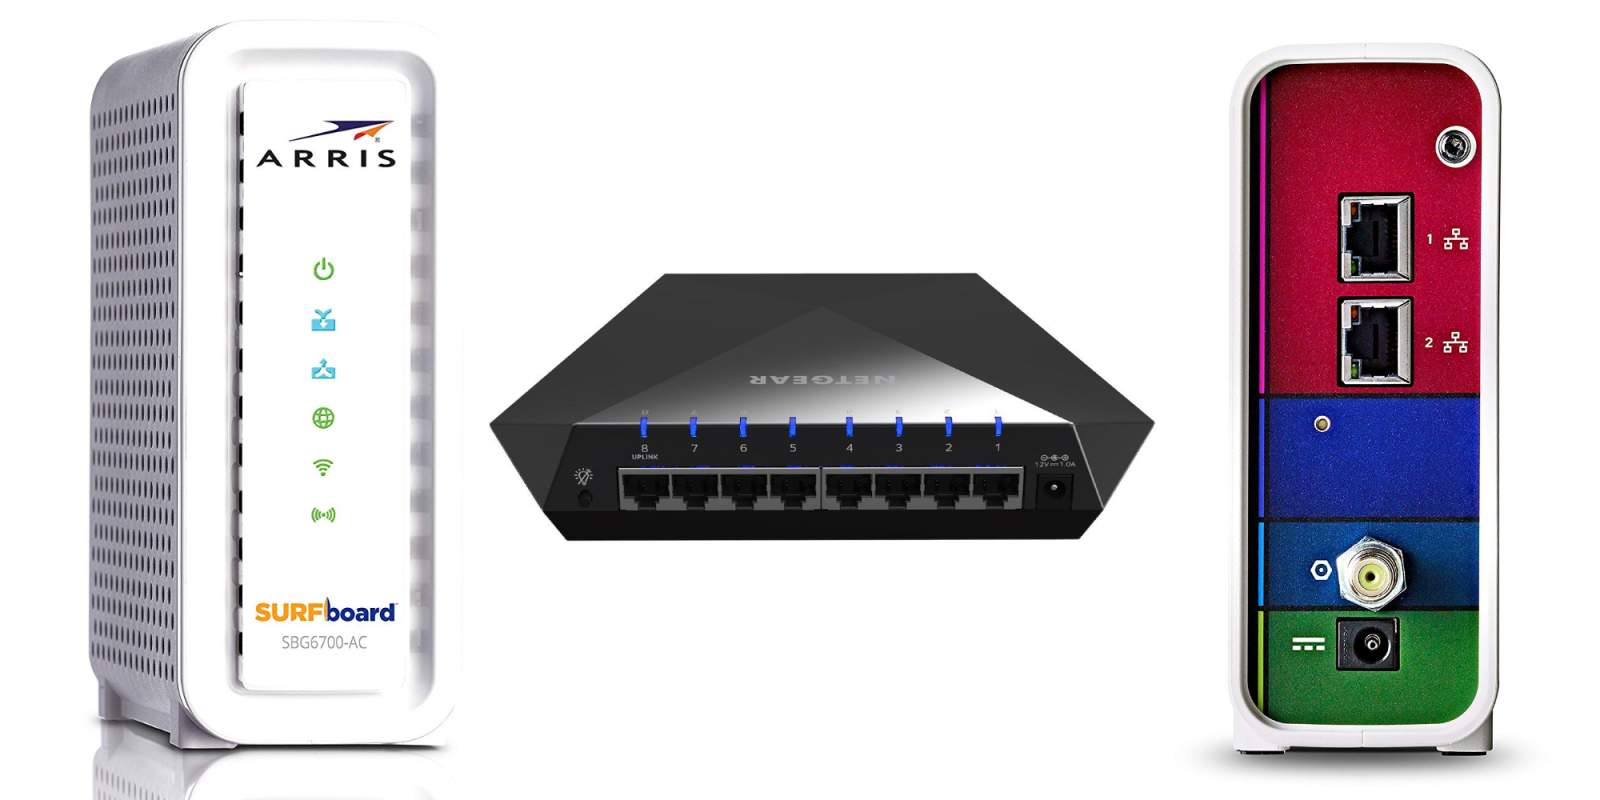 ARRIS' 802.11ac Router and DOCSIS 3.0 Modem Hybrid drops to $70 ($20 off), more from $55